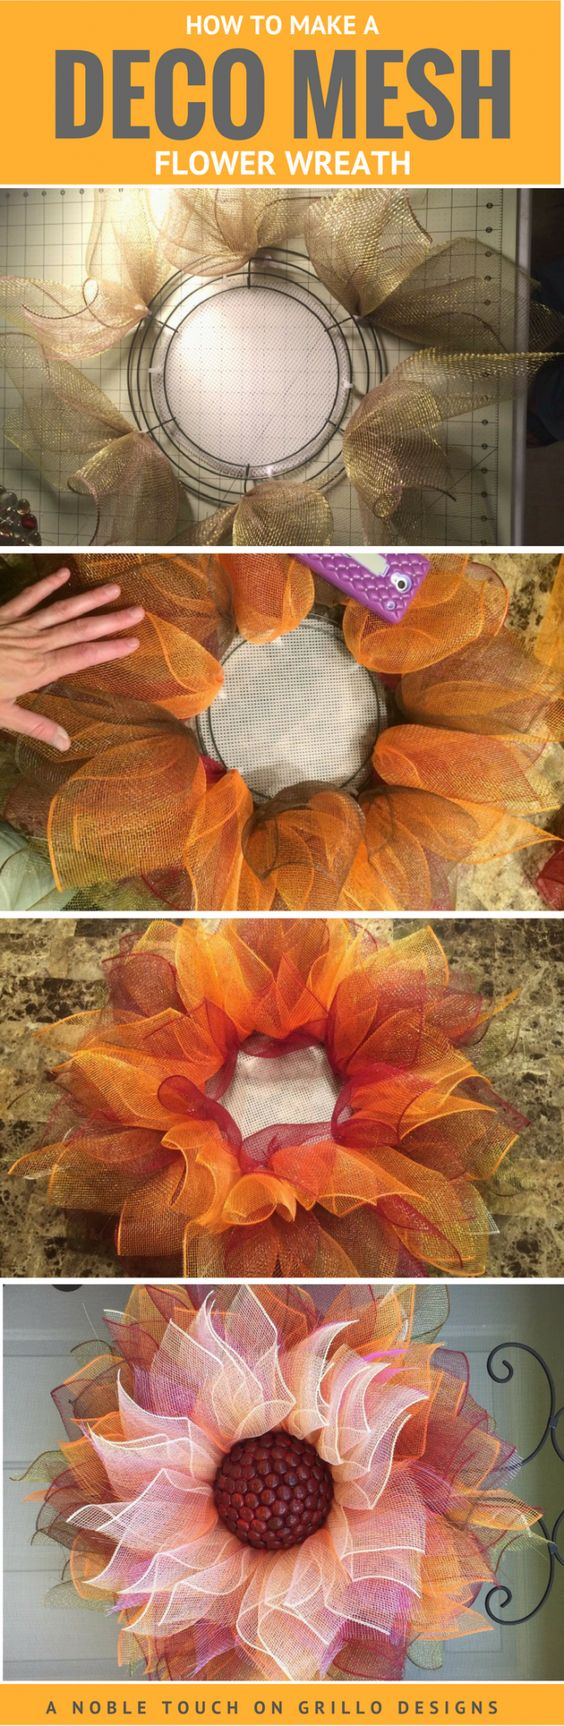 Deco Mesh Flower Wreath.